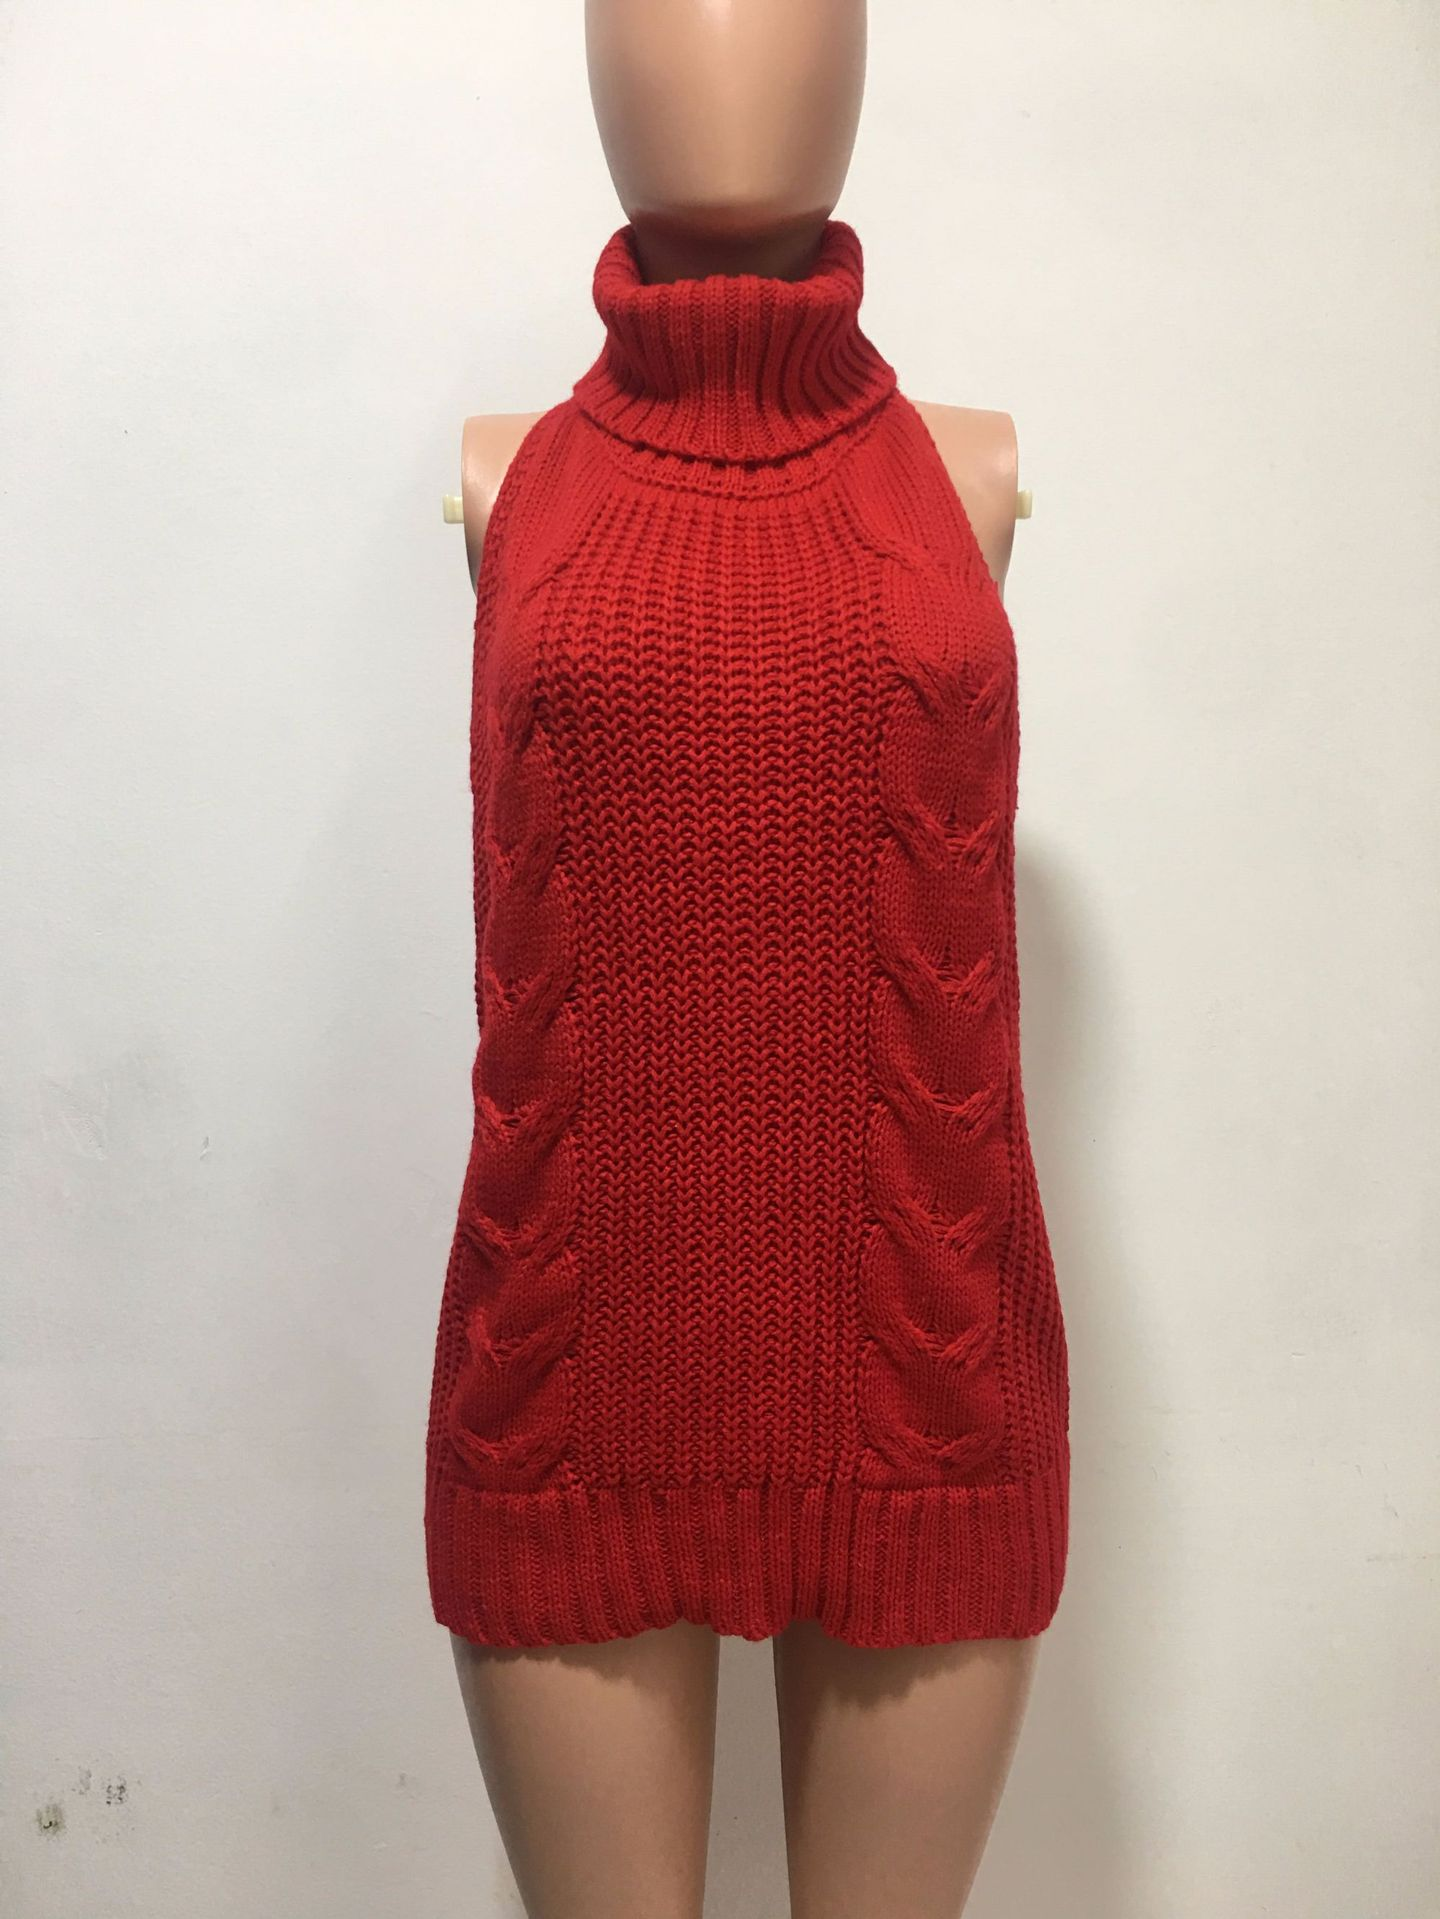 NEW Red Loose Hollow Open Sweater Knitted Pink Dress Recommend Winter Style Women Turtleneck Backless Dress Woman Solid Vestidos hot sale open front geometry pattern batwing winter loose cloak coat poncho cape for women